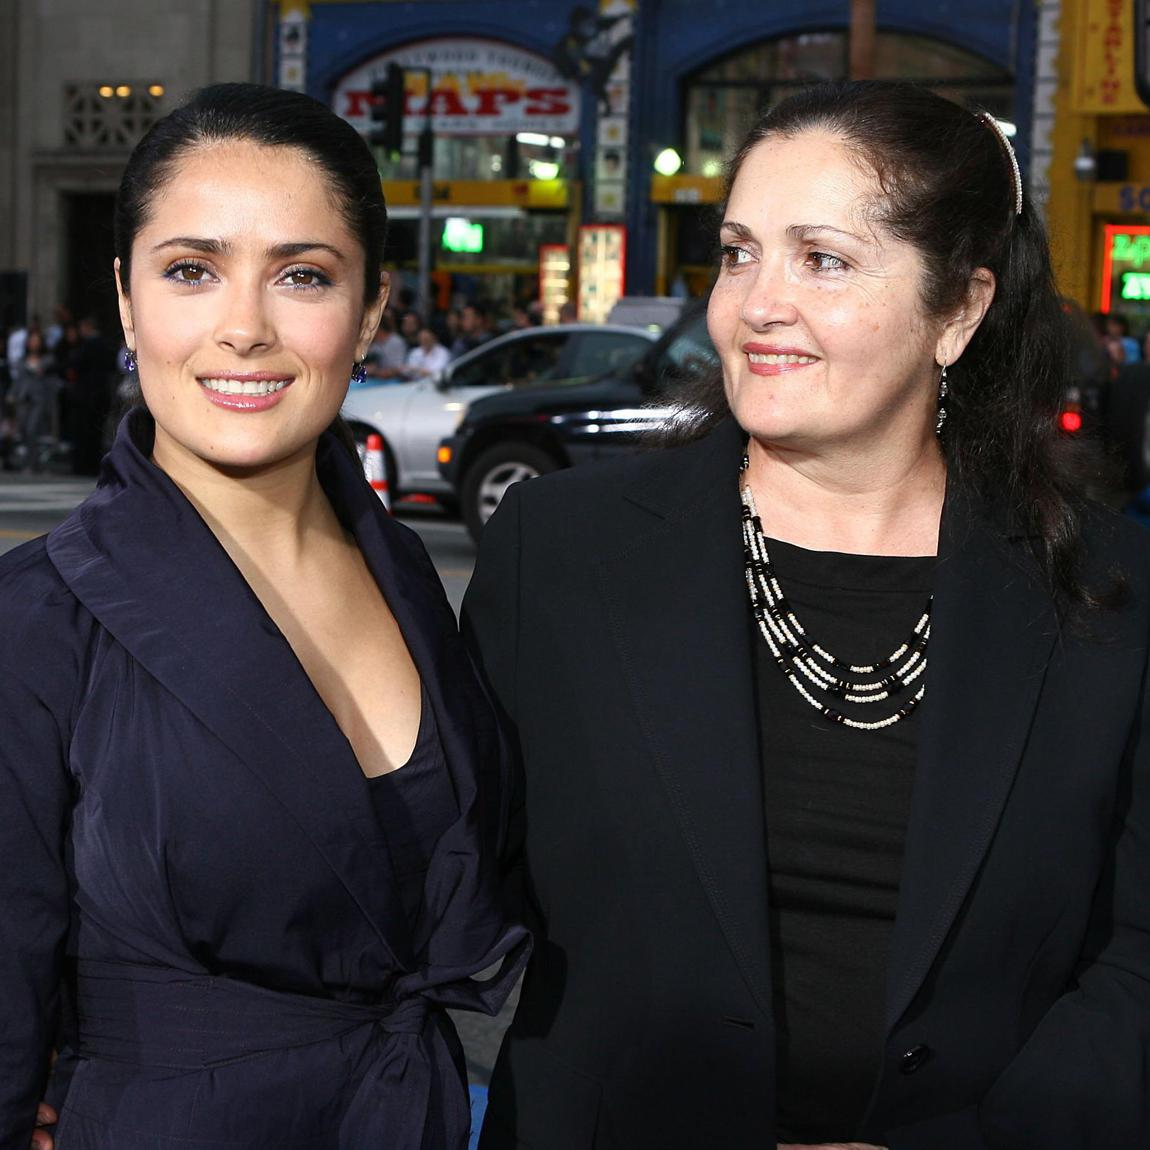 Salma Hayek and her mother Diana Jiménez Medina